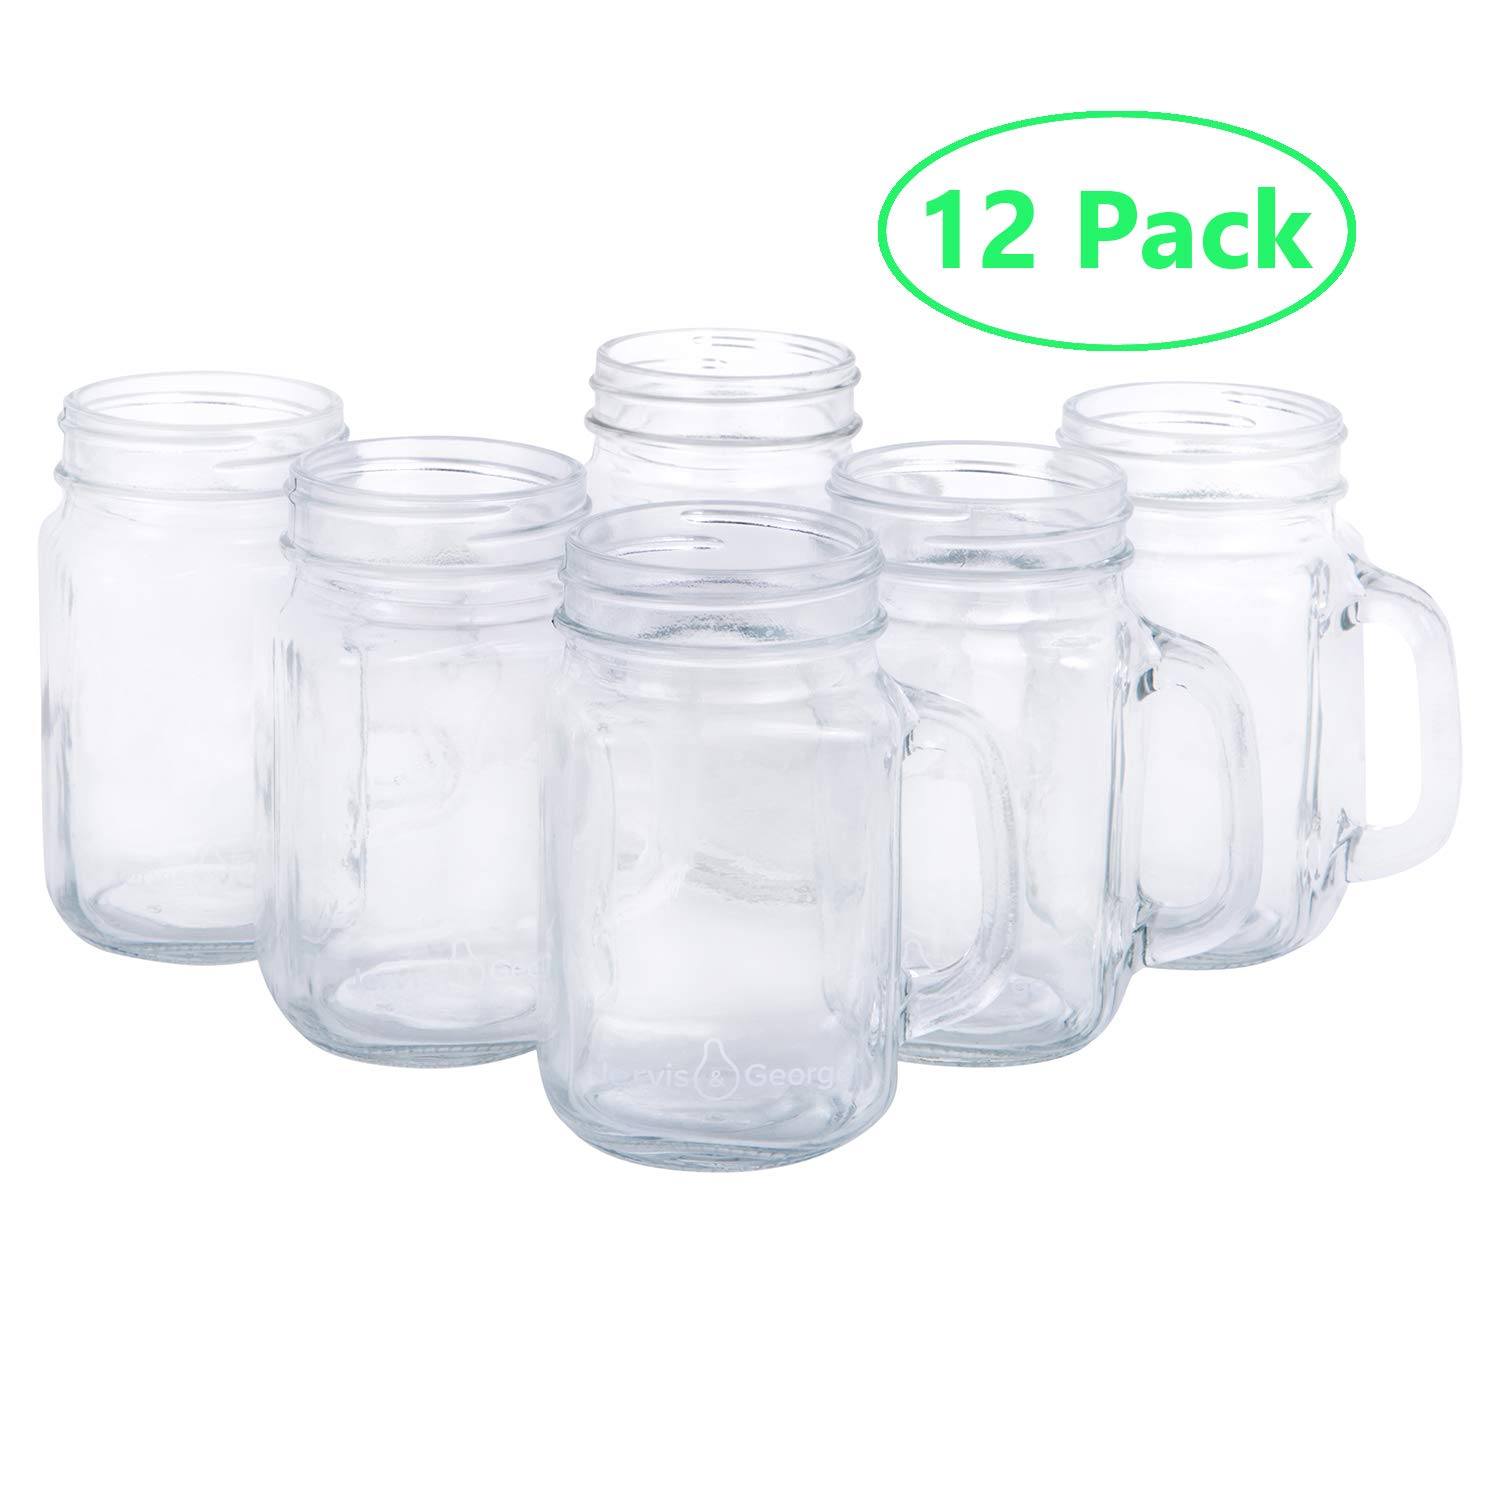 16oz Glass Mason Jar Drinking Cups/Mugs with Handle - Great for Gifts (12 Pack) by Jervis & George